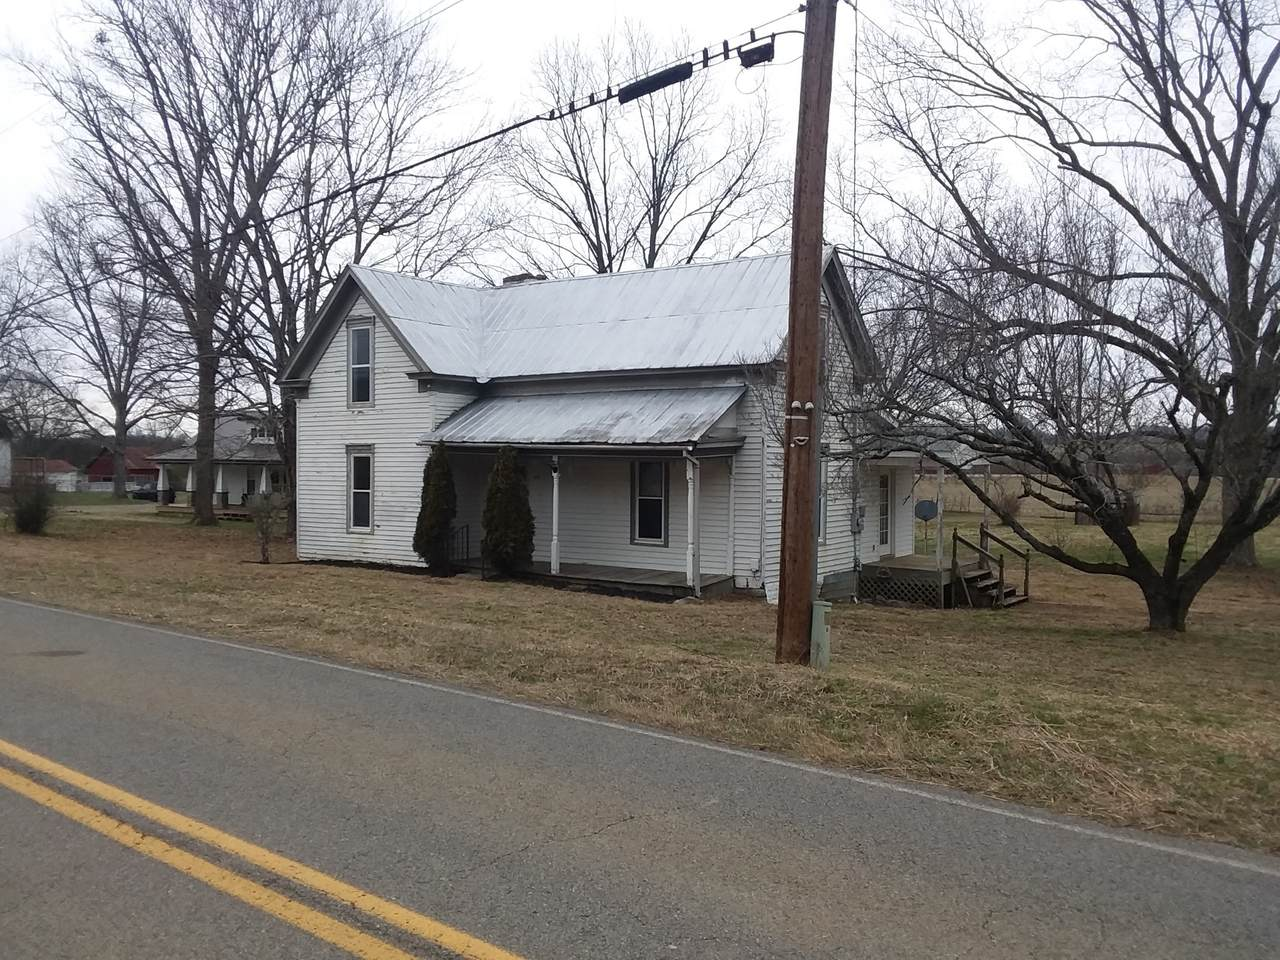 44 Teal Hollow Rd - Photo 1